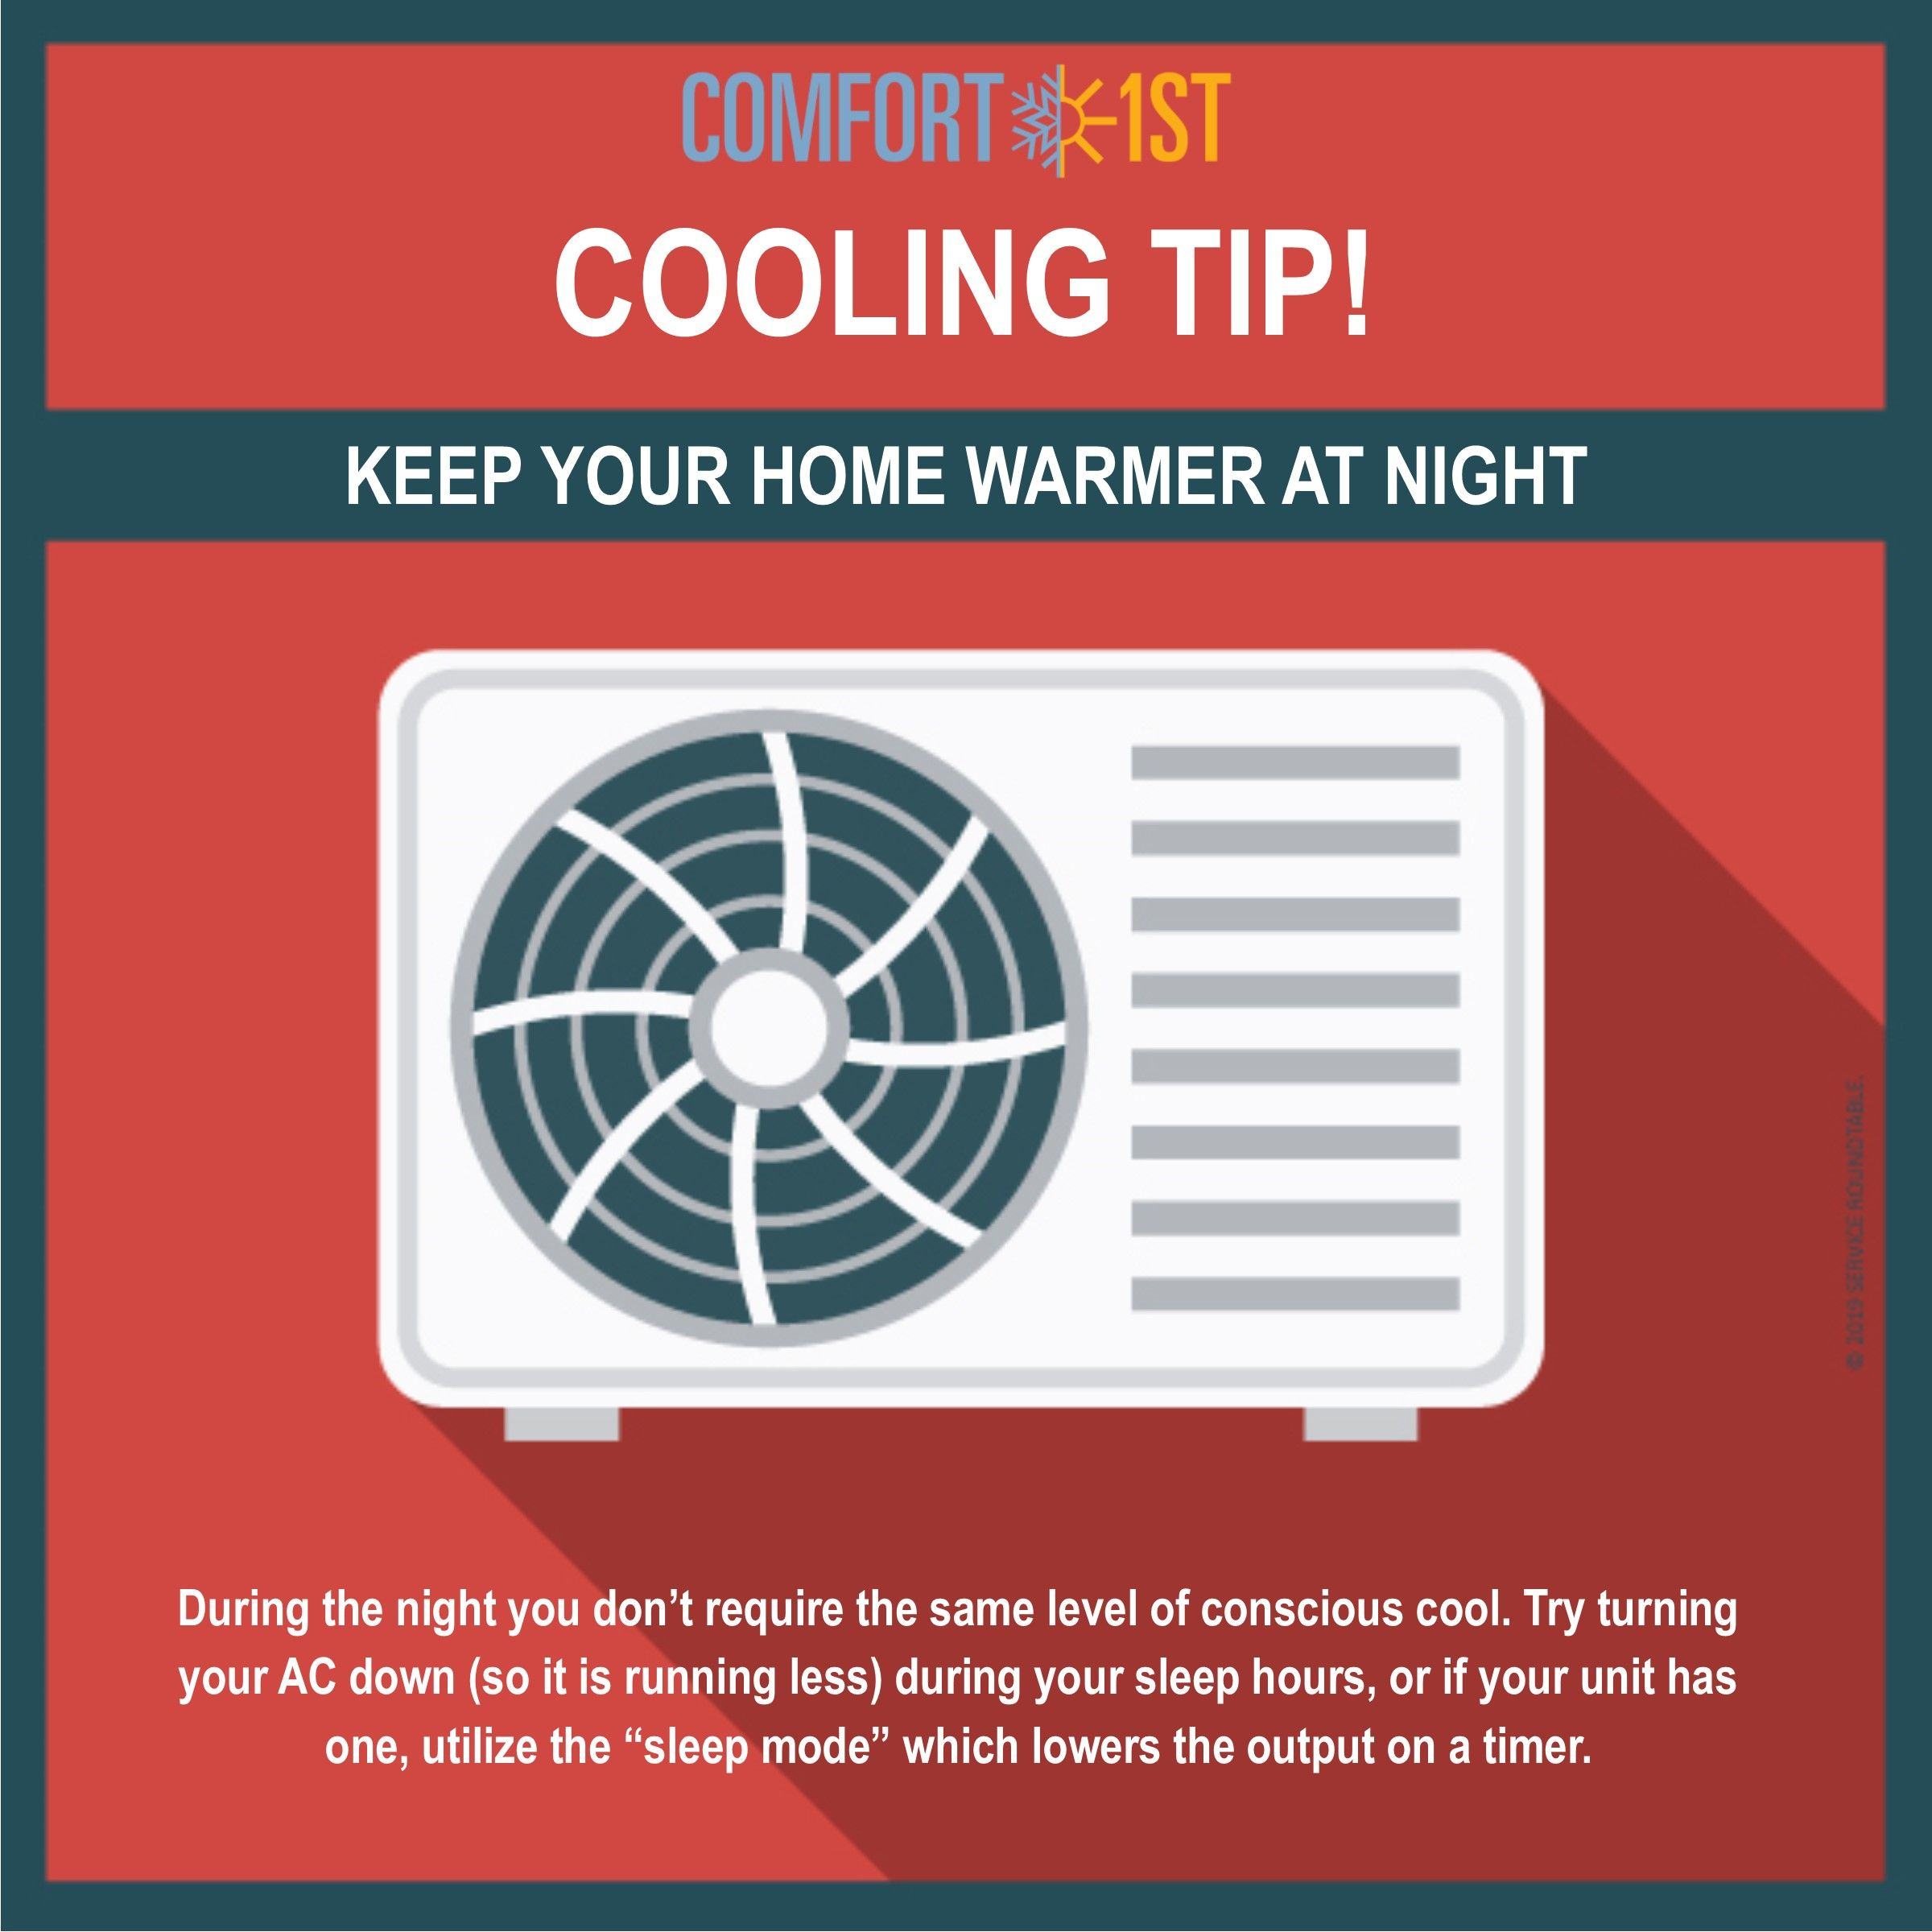 Katelyn here with your monthly Cooling Tip! As the